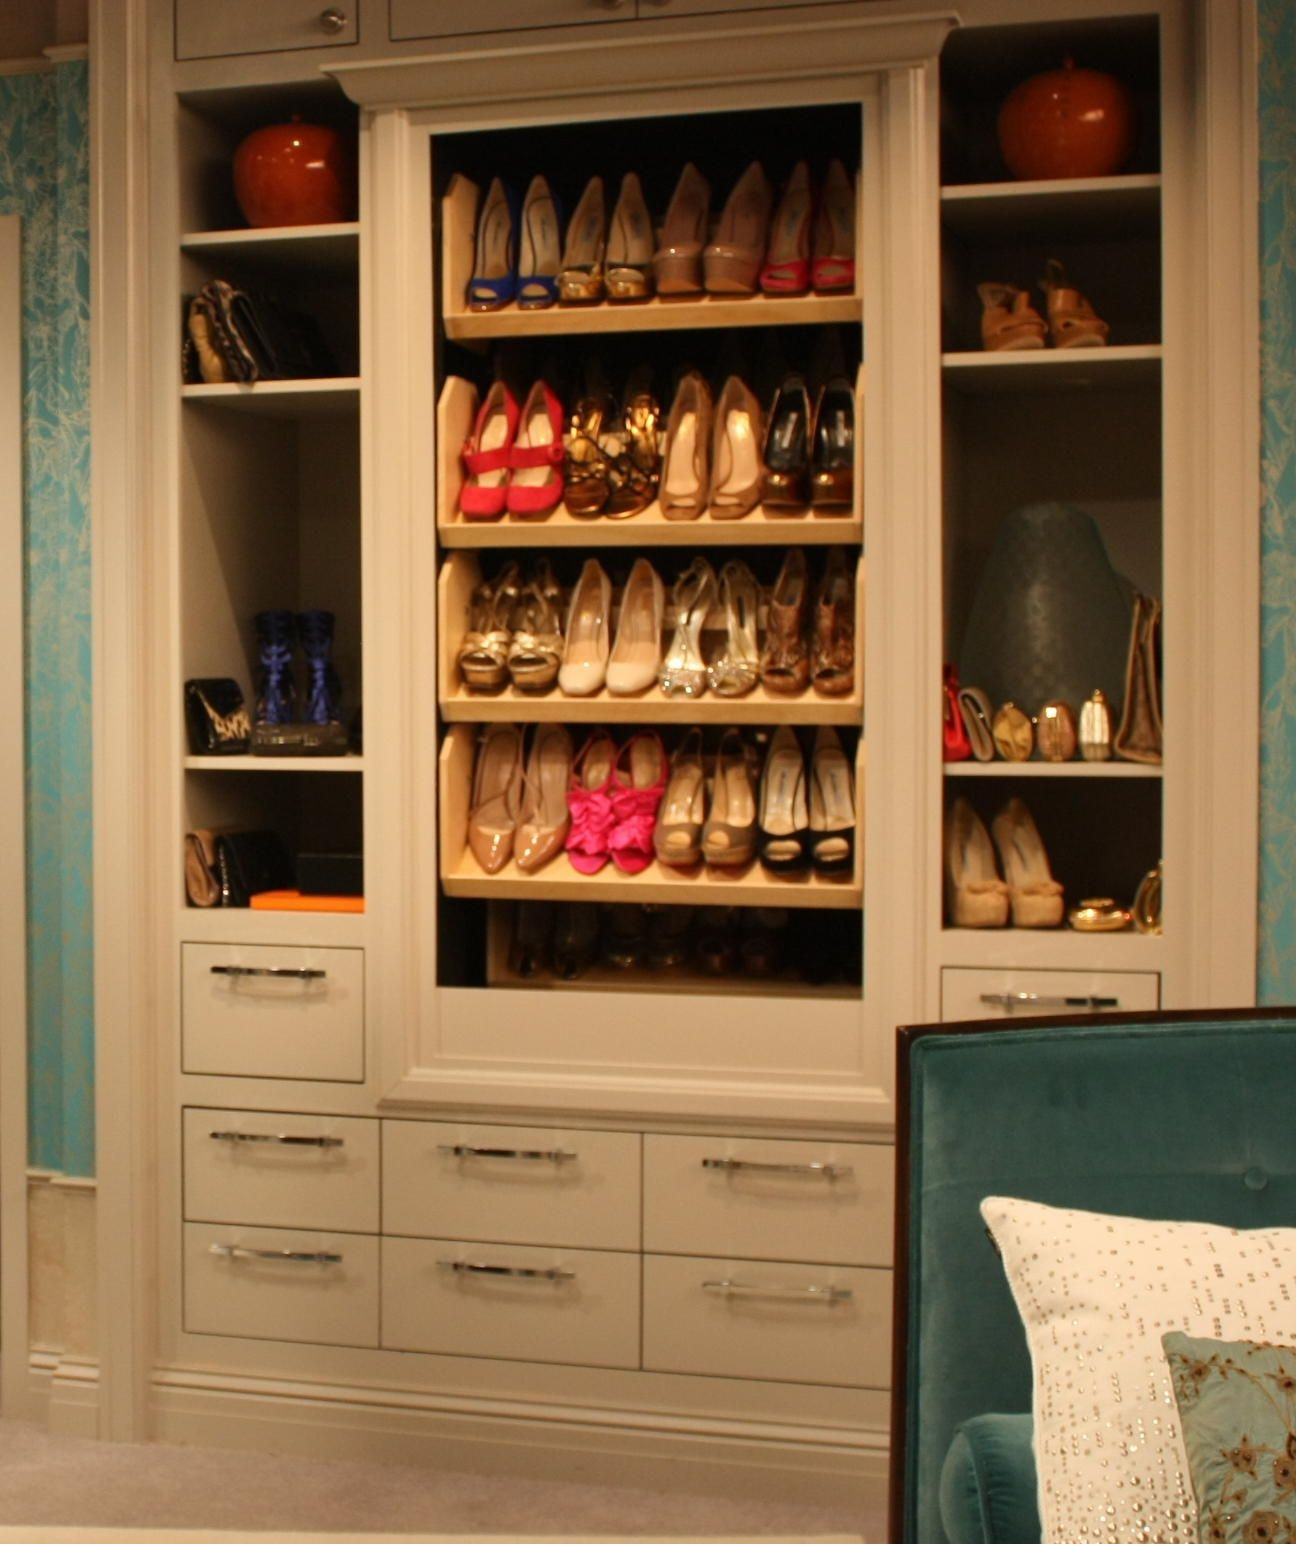 Electric Shoe Carousel Must Have 3 Home Storage Solutions Shoe Storage Shoe Storage Cabinet